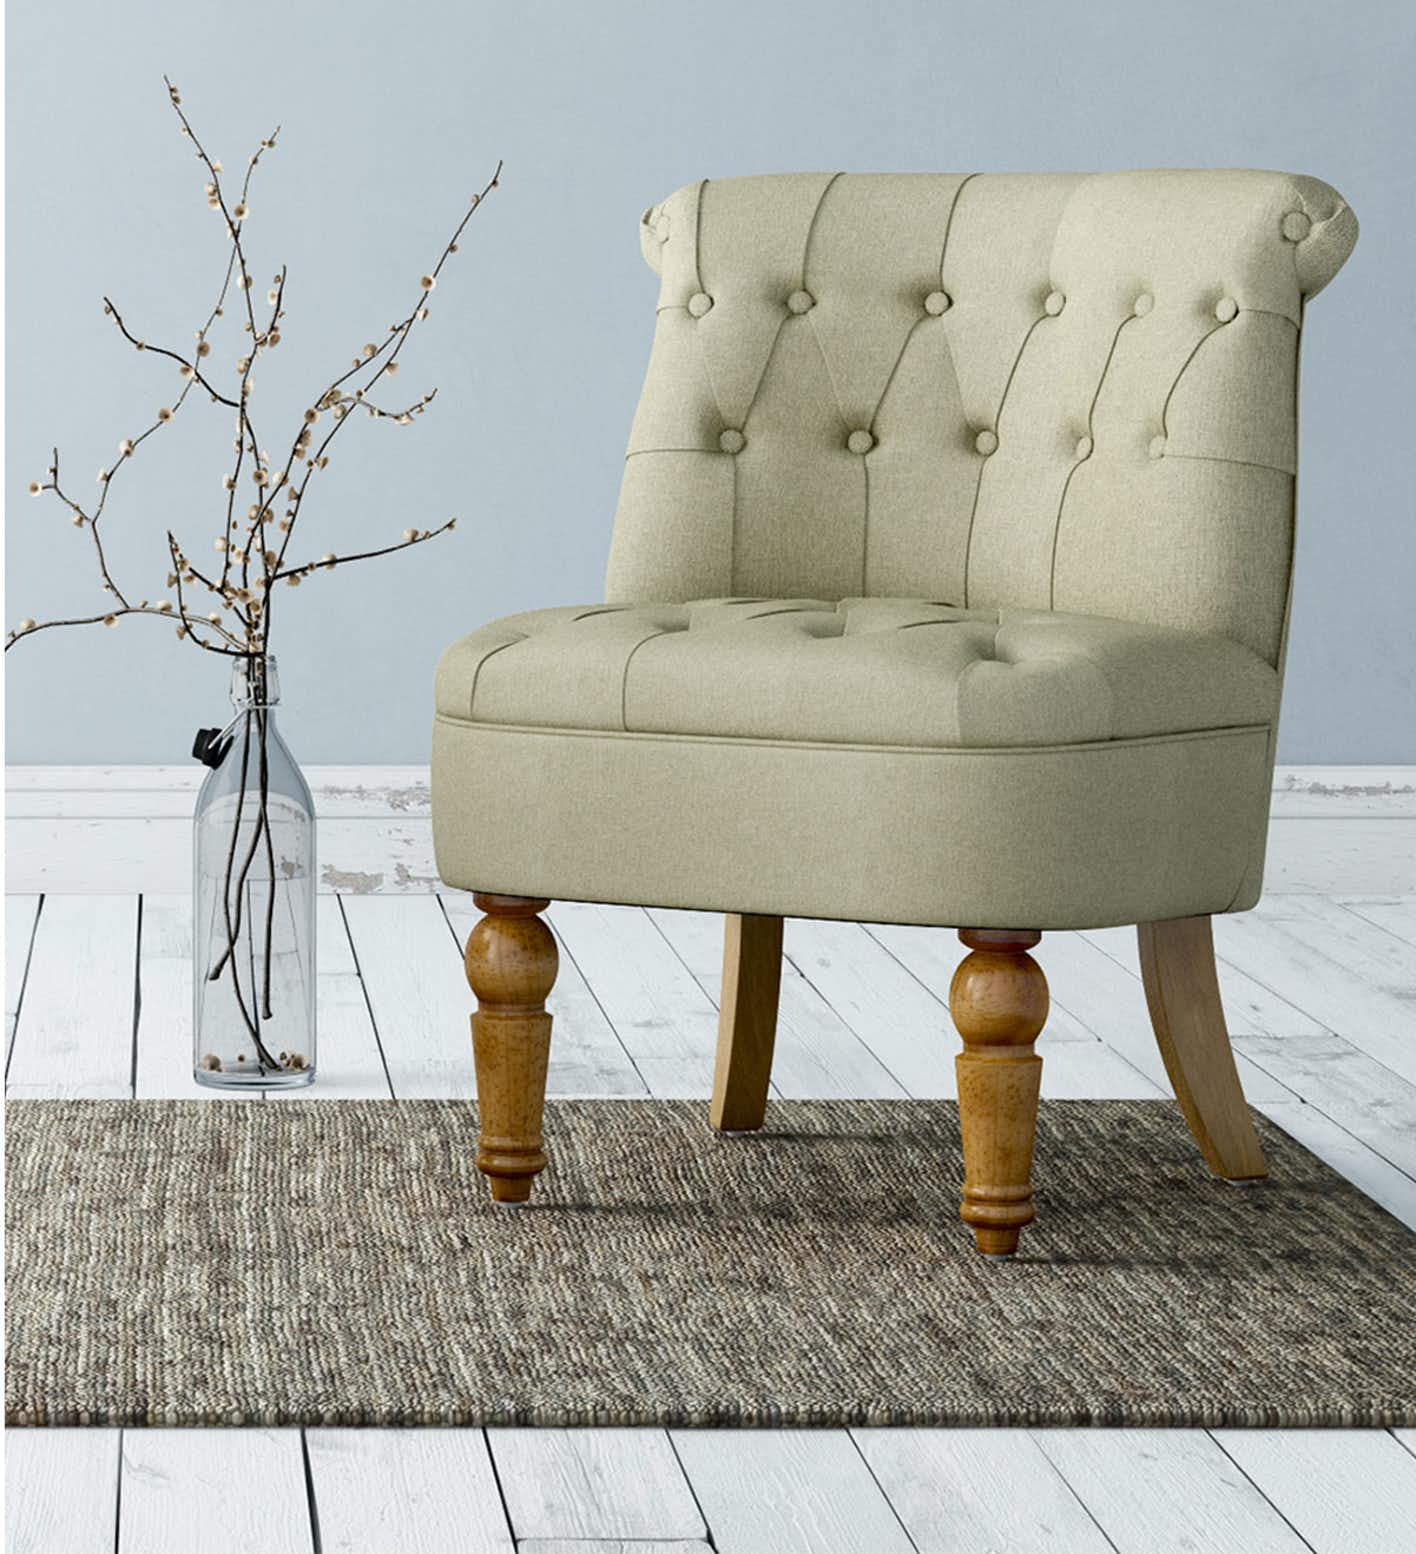 Online Home Furnishings: Home Furniture Online